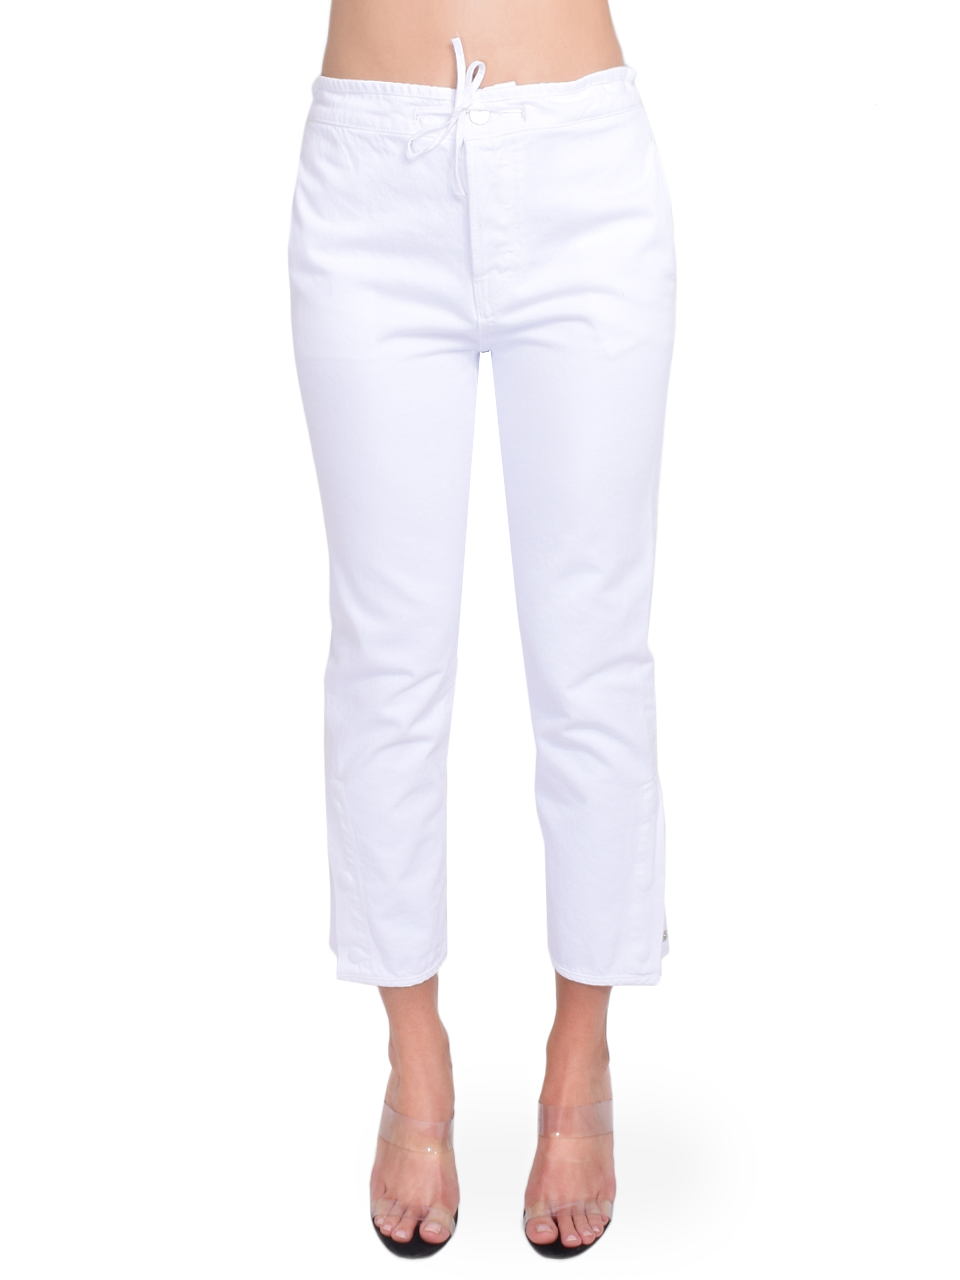 Matisse Pants in Optic White Front View X1https://cdn11.bigcommerce.com/s-3wu6n/products/33299/images/109862/104__14982.1594164800.244.365.jpg?c=2X2